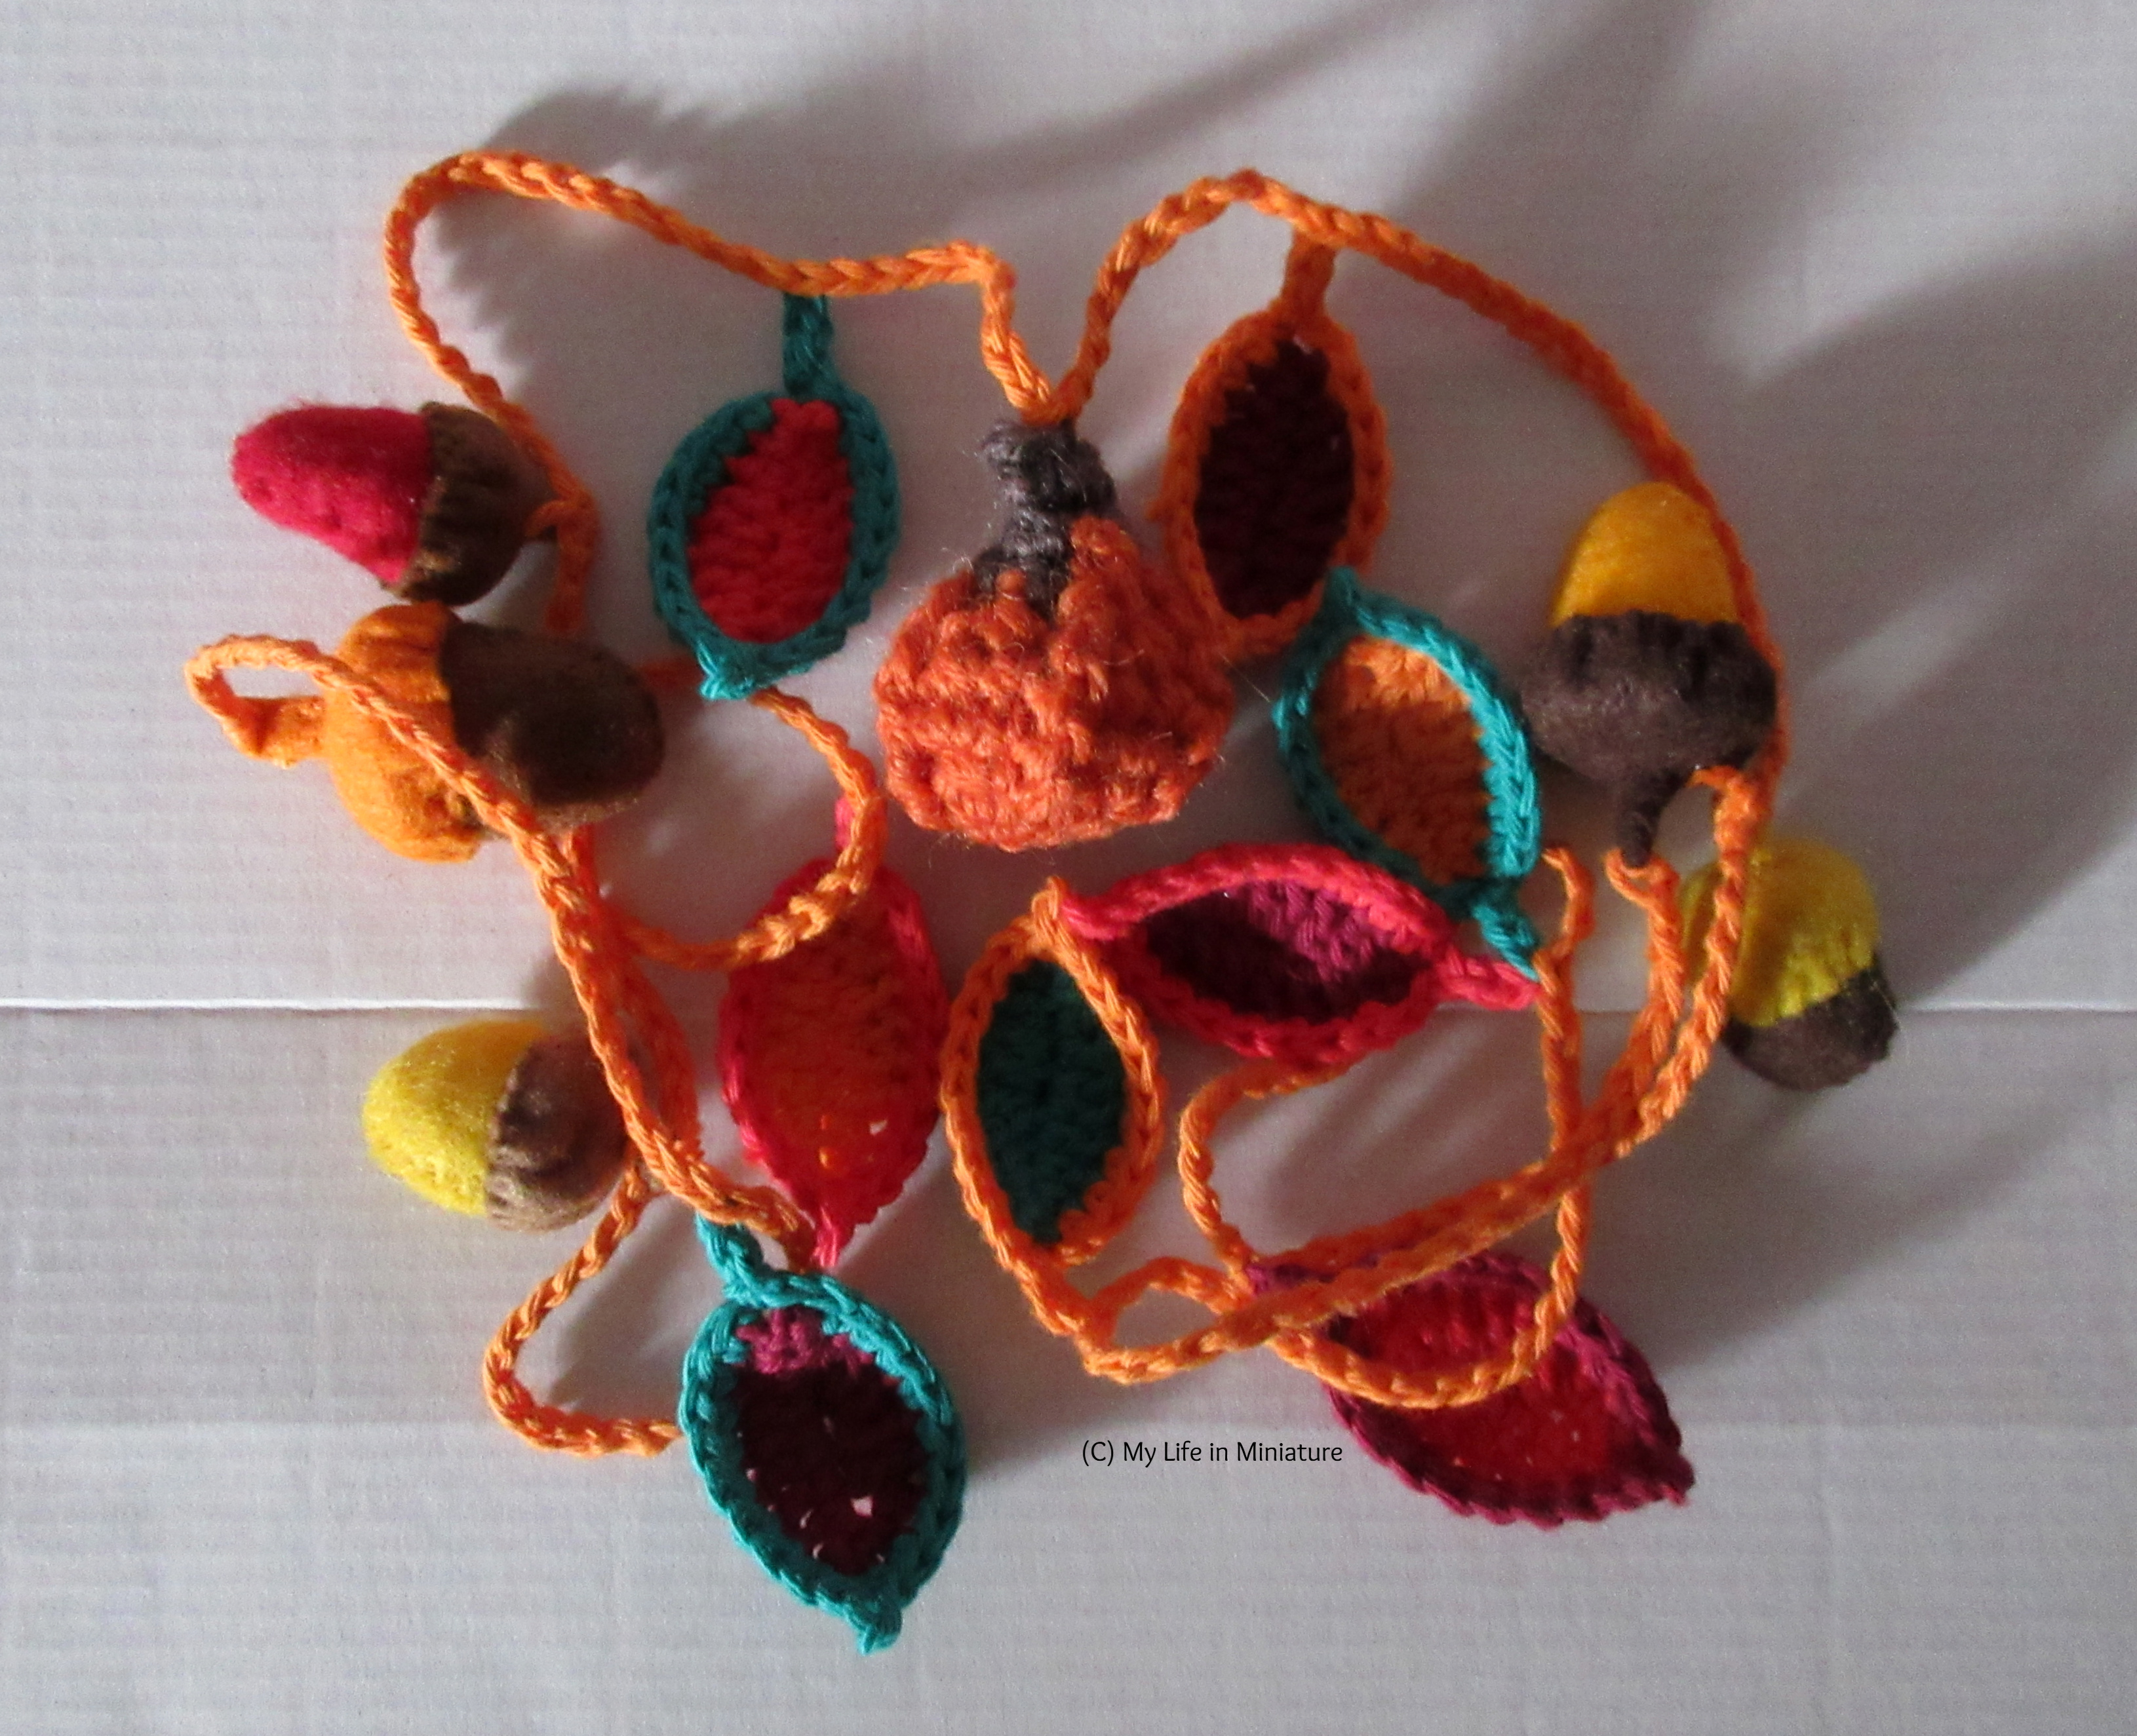 An autumnal garland sits in a pile on a white background. Felt acorns are visible, as well as crocheted leaves in various shades of green, red, and orange, and a small crocheted pumpkin.